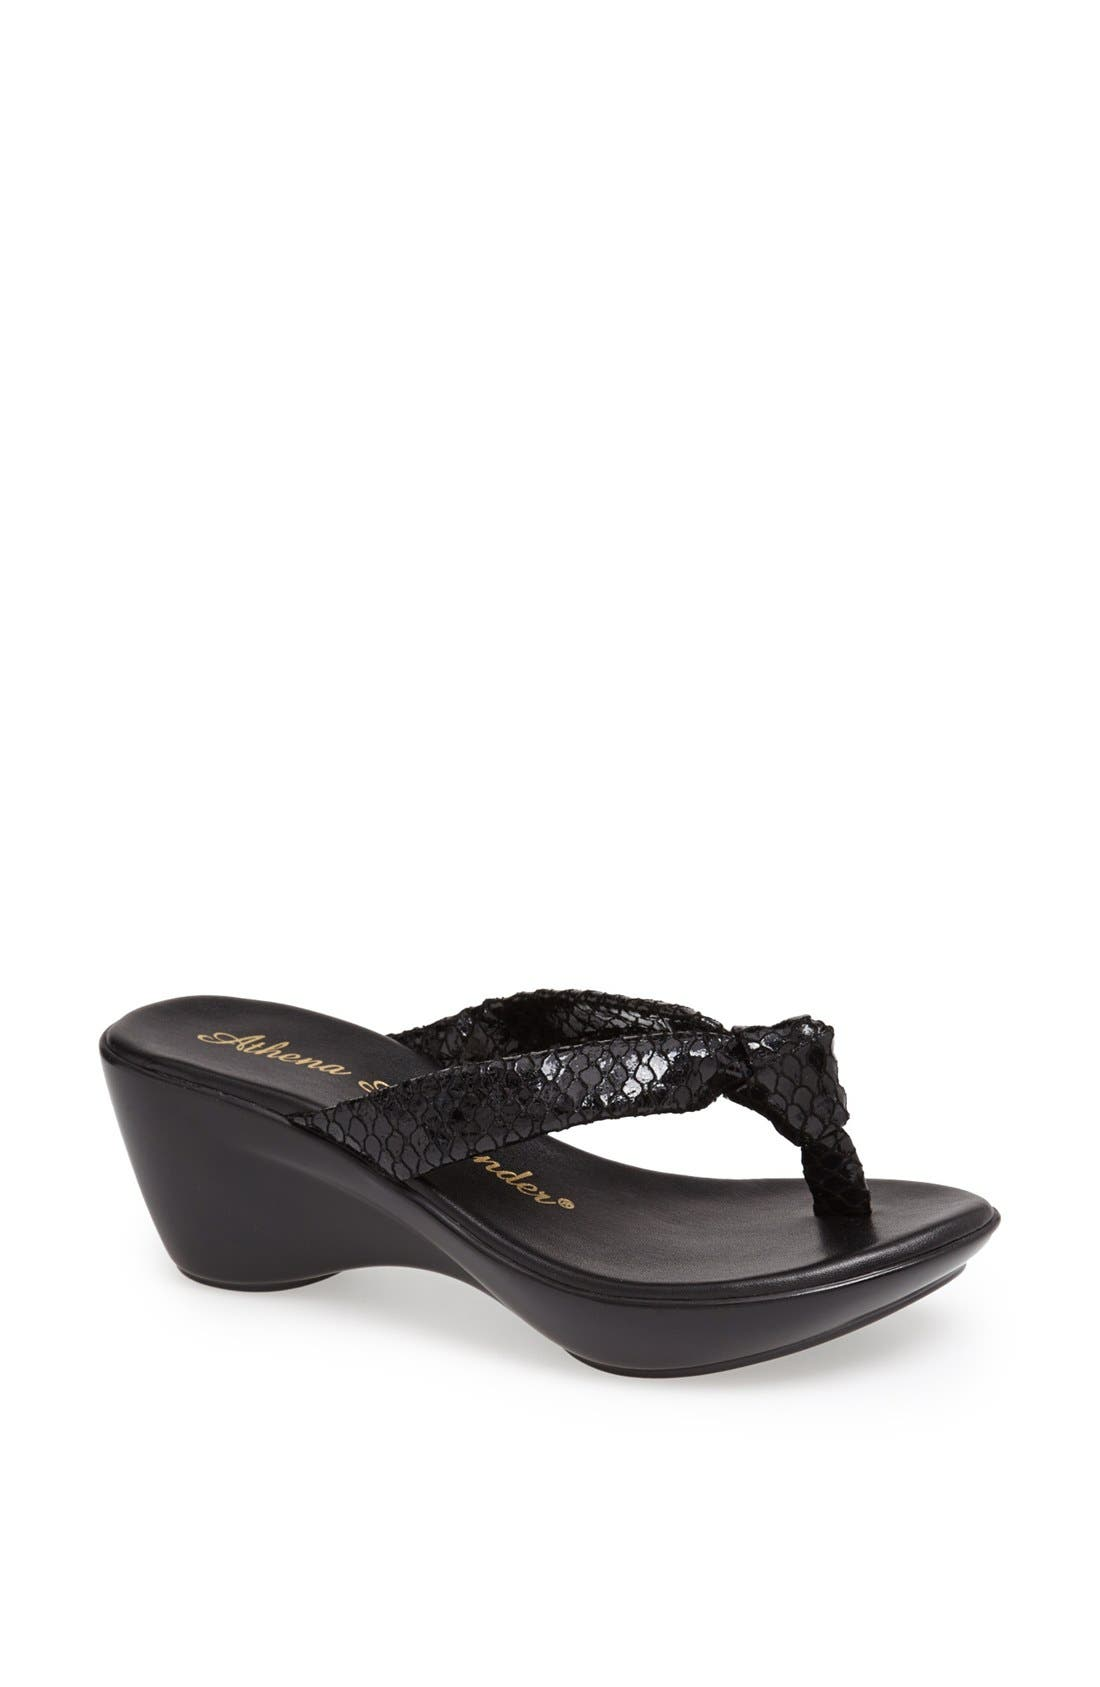 Main Image - Athena Alexander 'Ever' Wedge Sandal